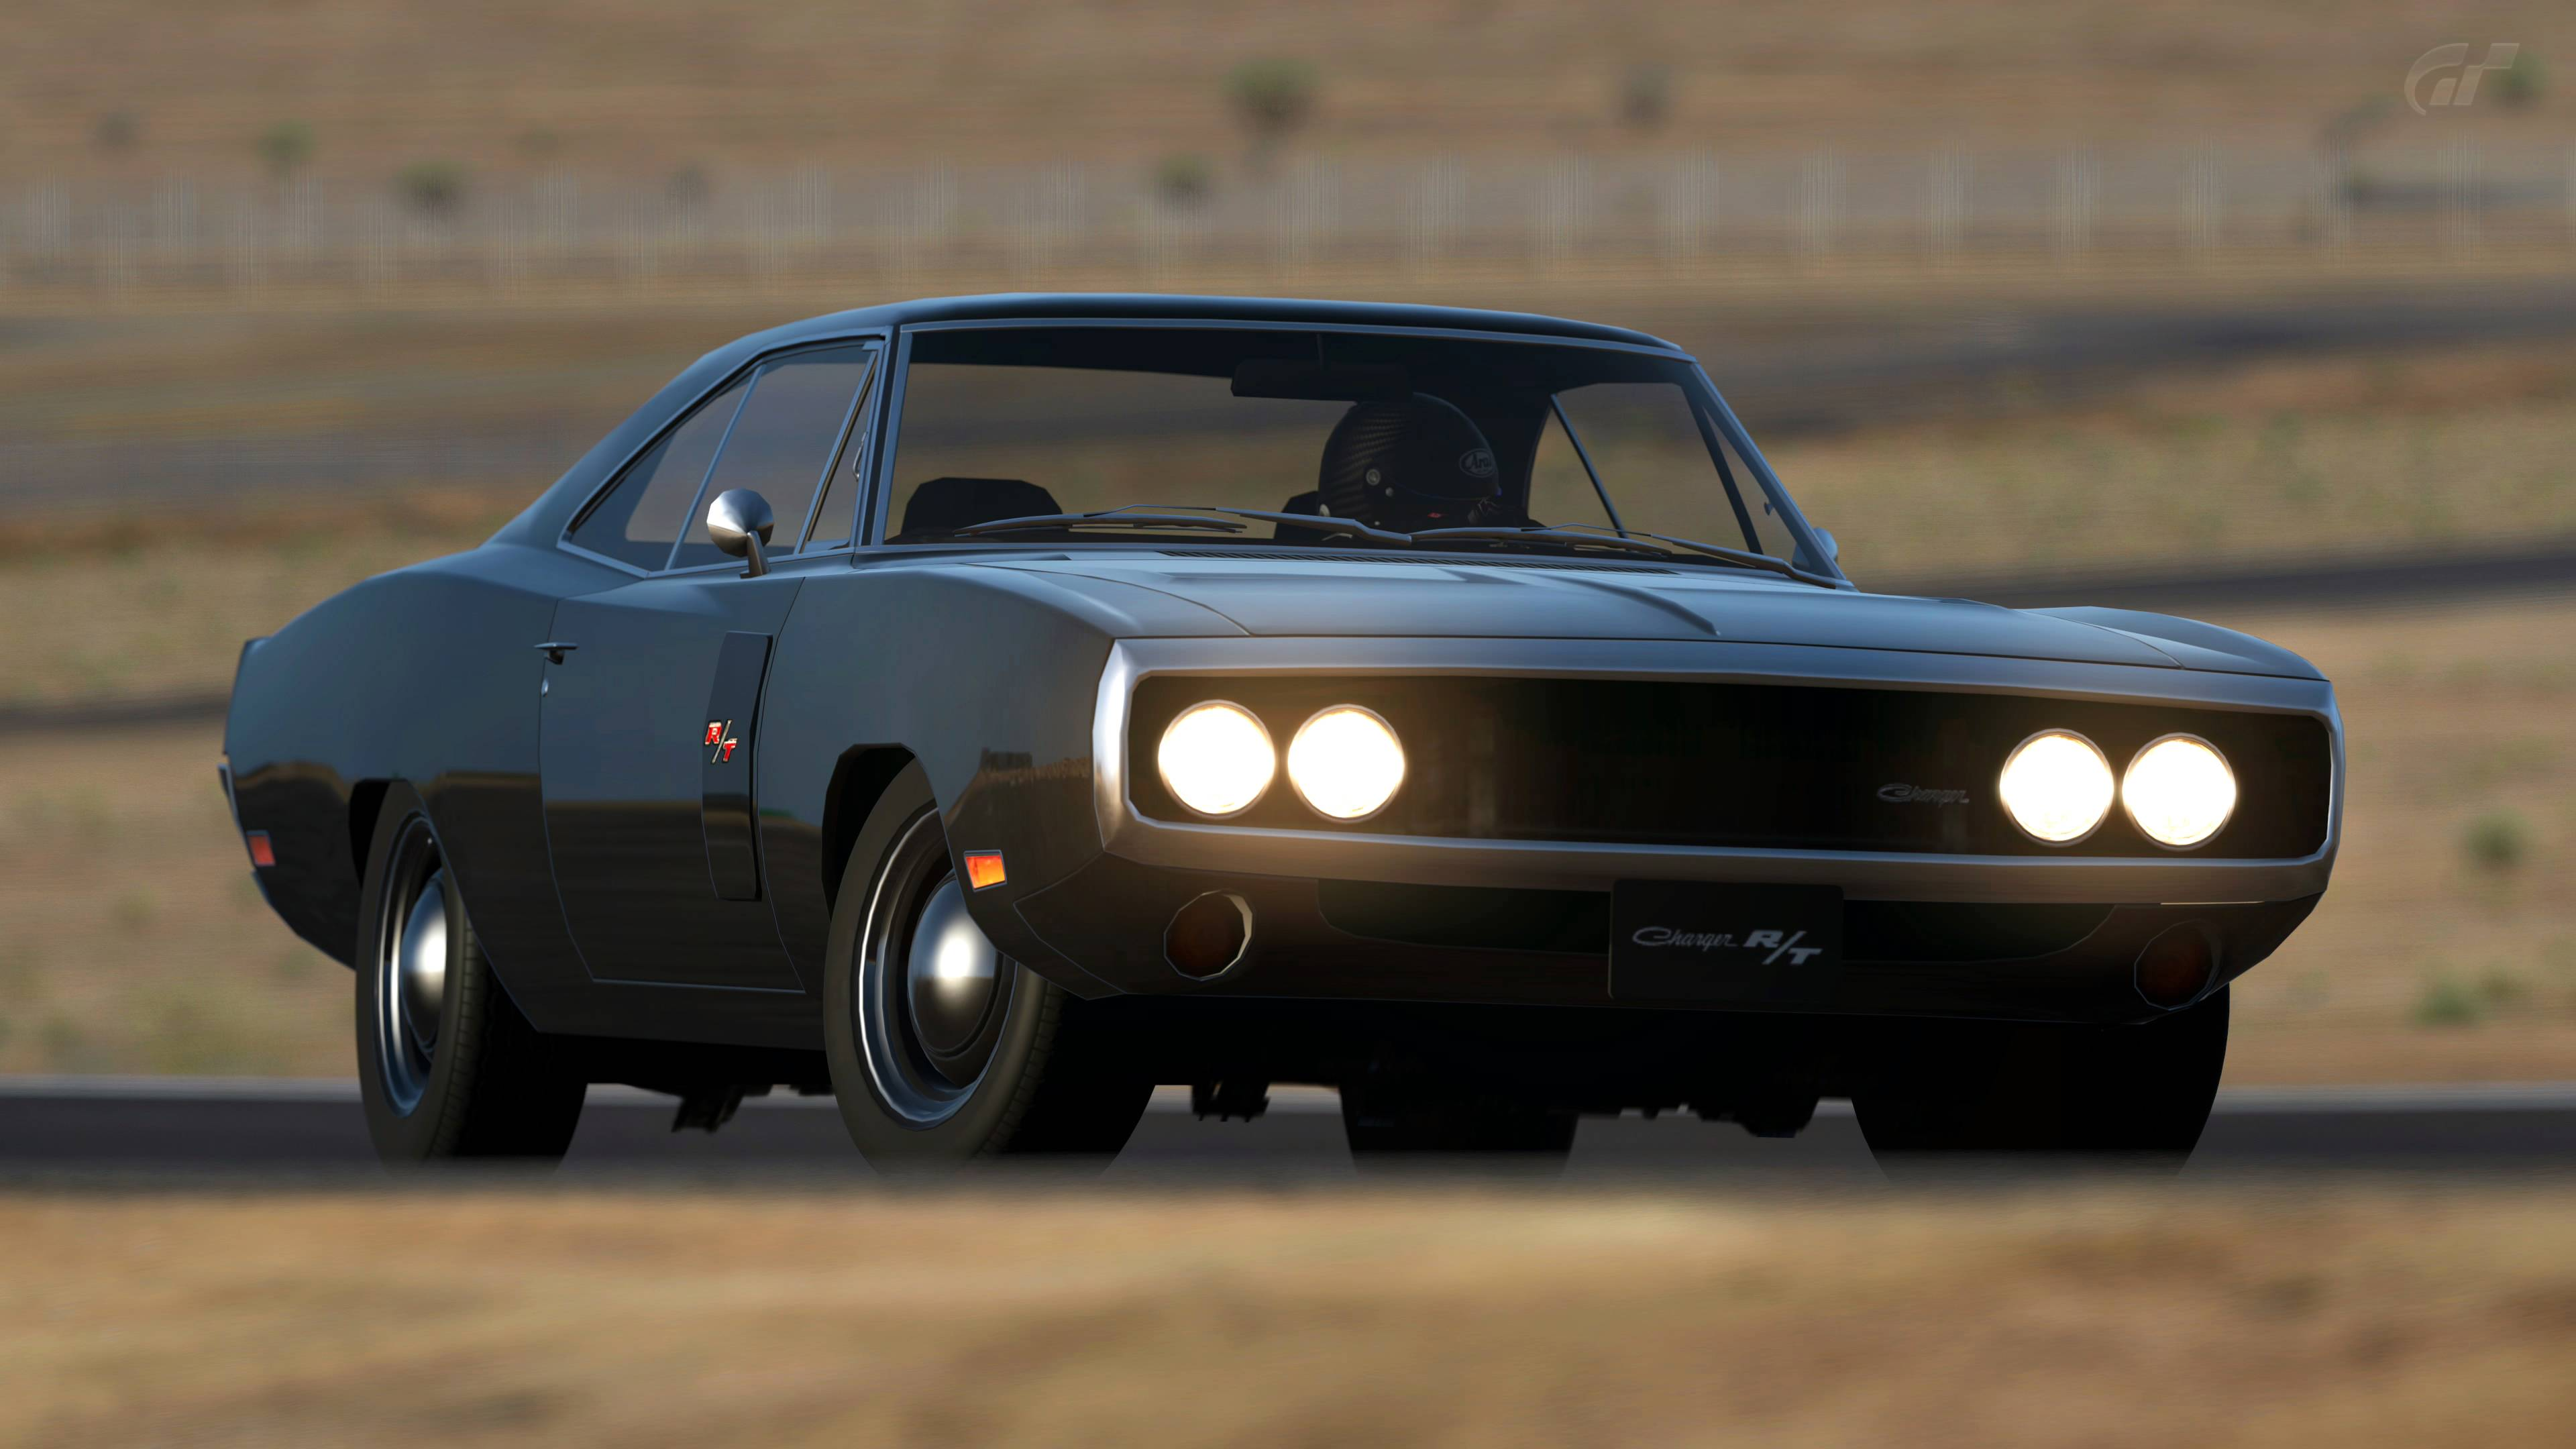 1970 dodge charger wallpapers wallpaper cave. Black Bedroom Furniture Sets. Home Design Ideas